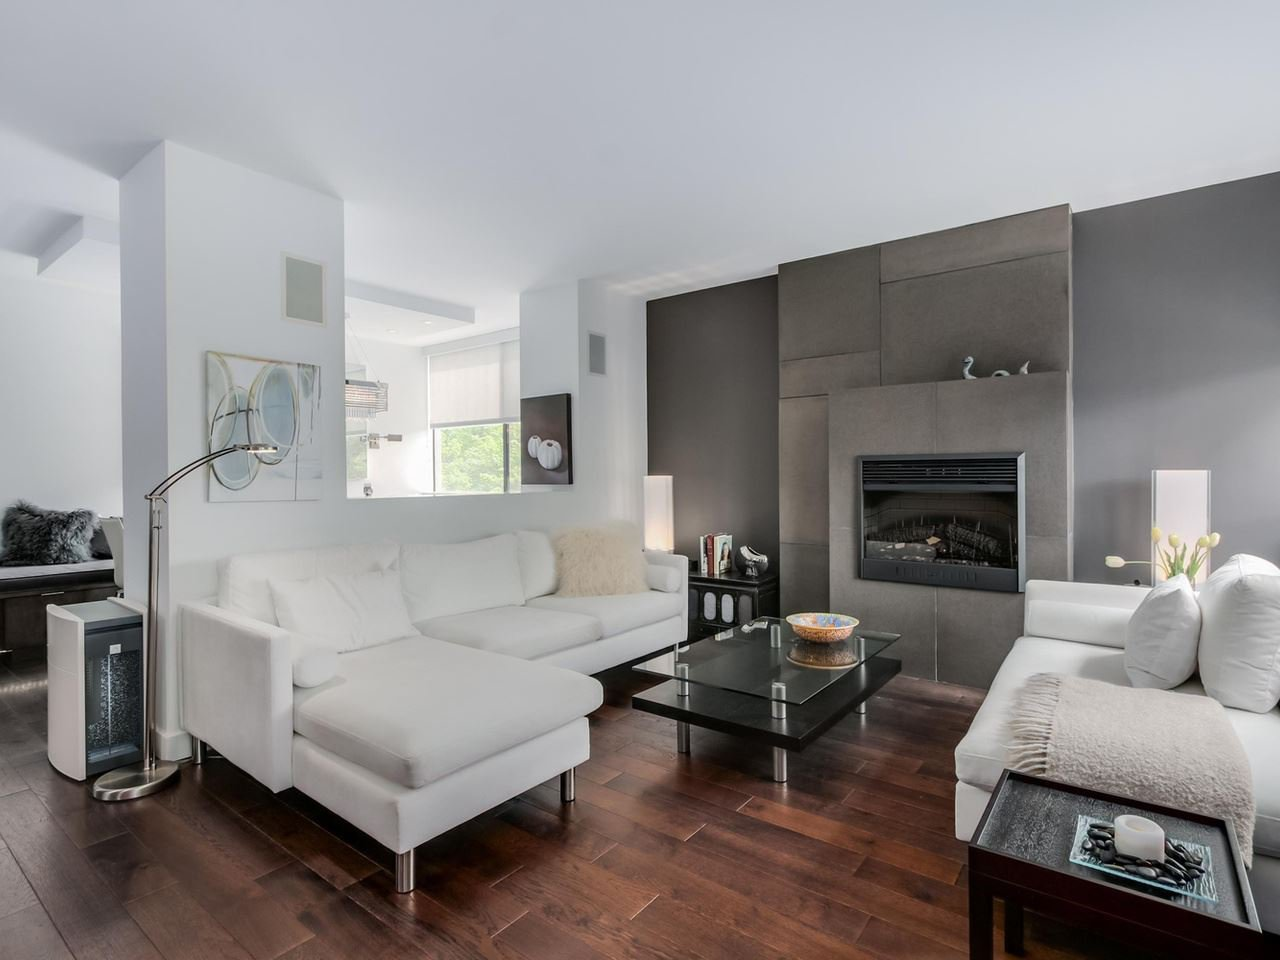 """Main Photo: 202 1725 PENDRELL Street in Vancouver: West End VW Condo for sale in """"Stratford Place"""" (Vancouver West)  : MLS®# R2071690"""